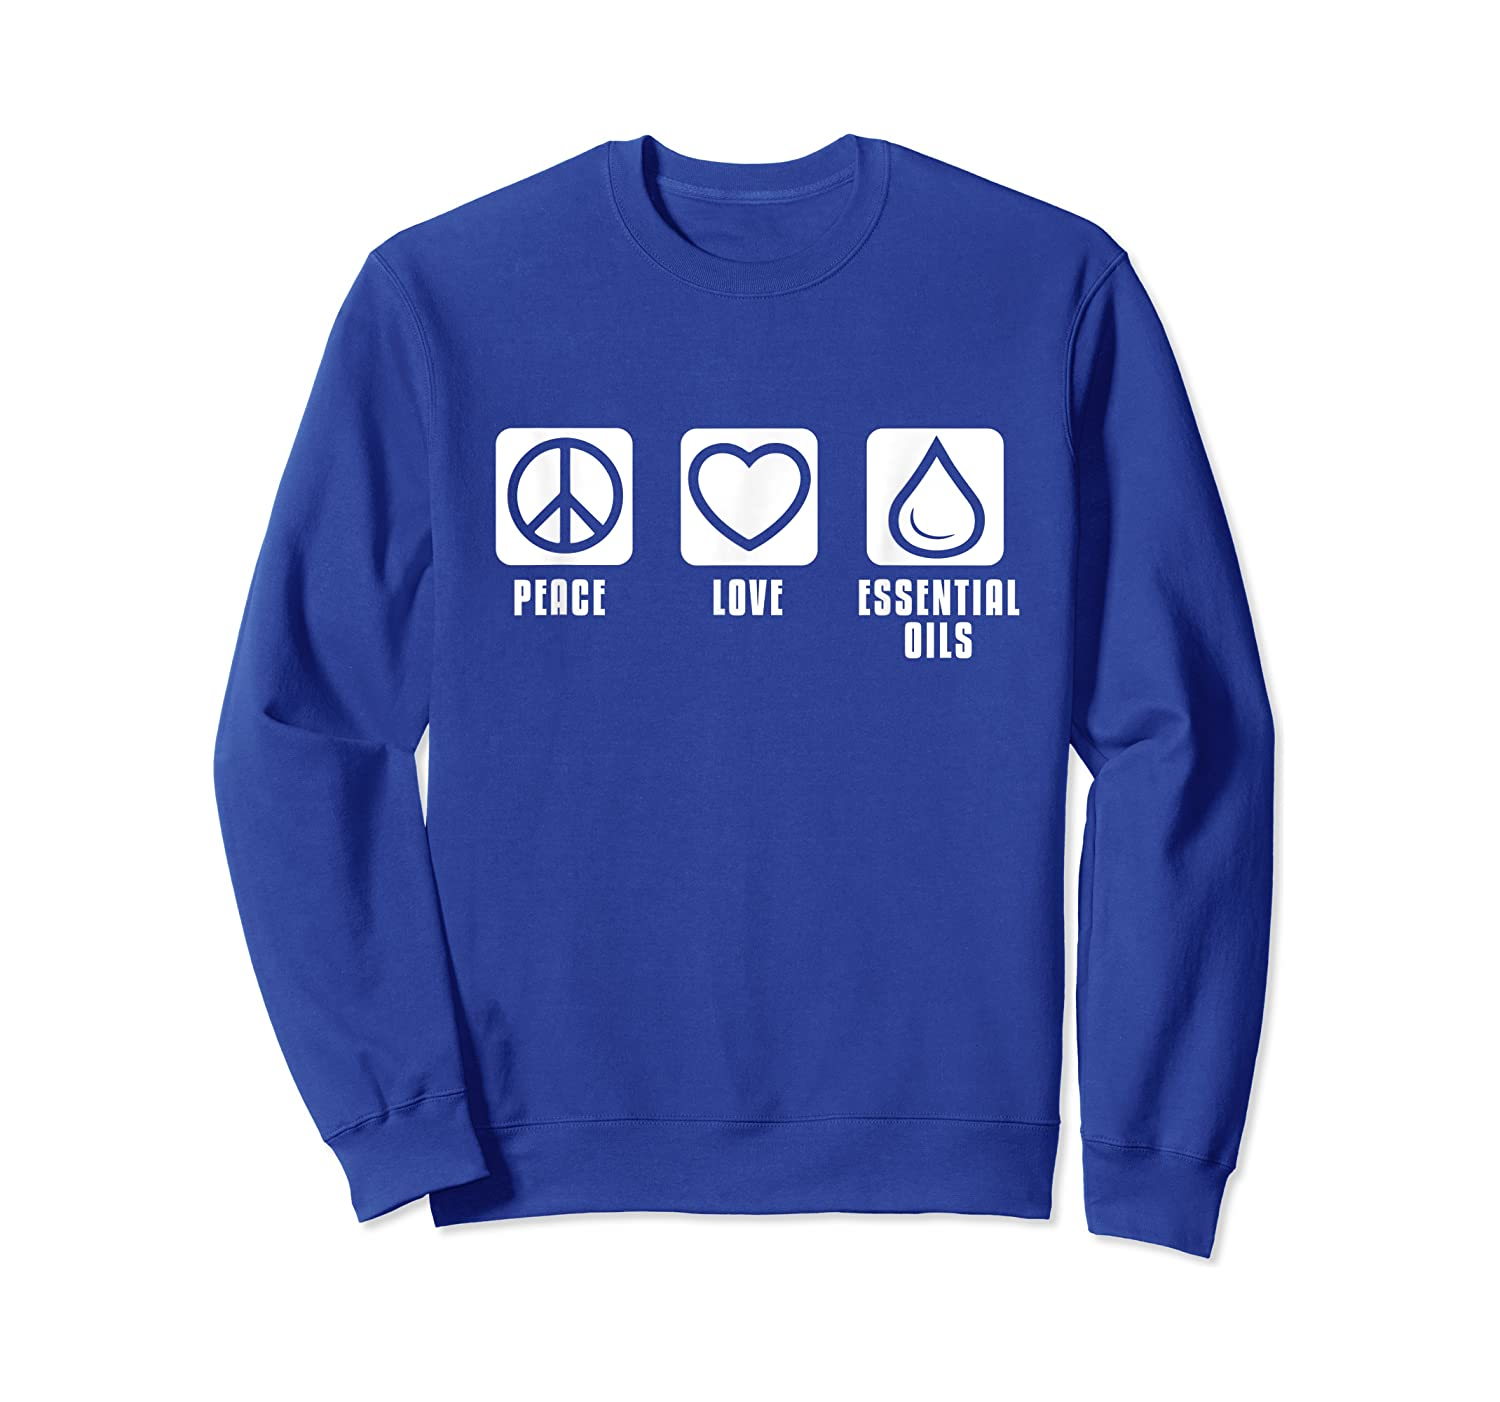 Essential Oil Gifts Shirts Crewneck Sweater